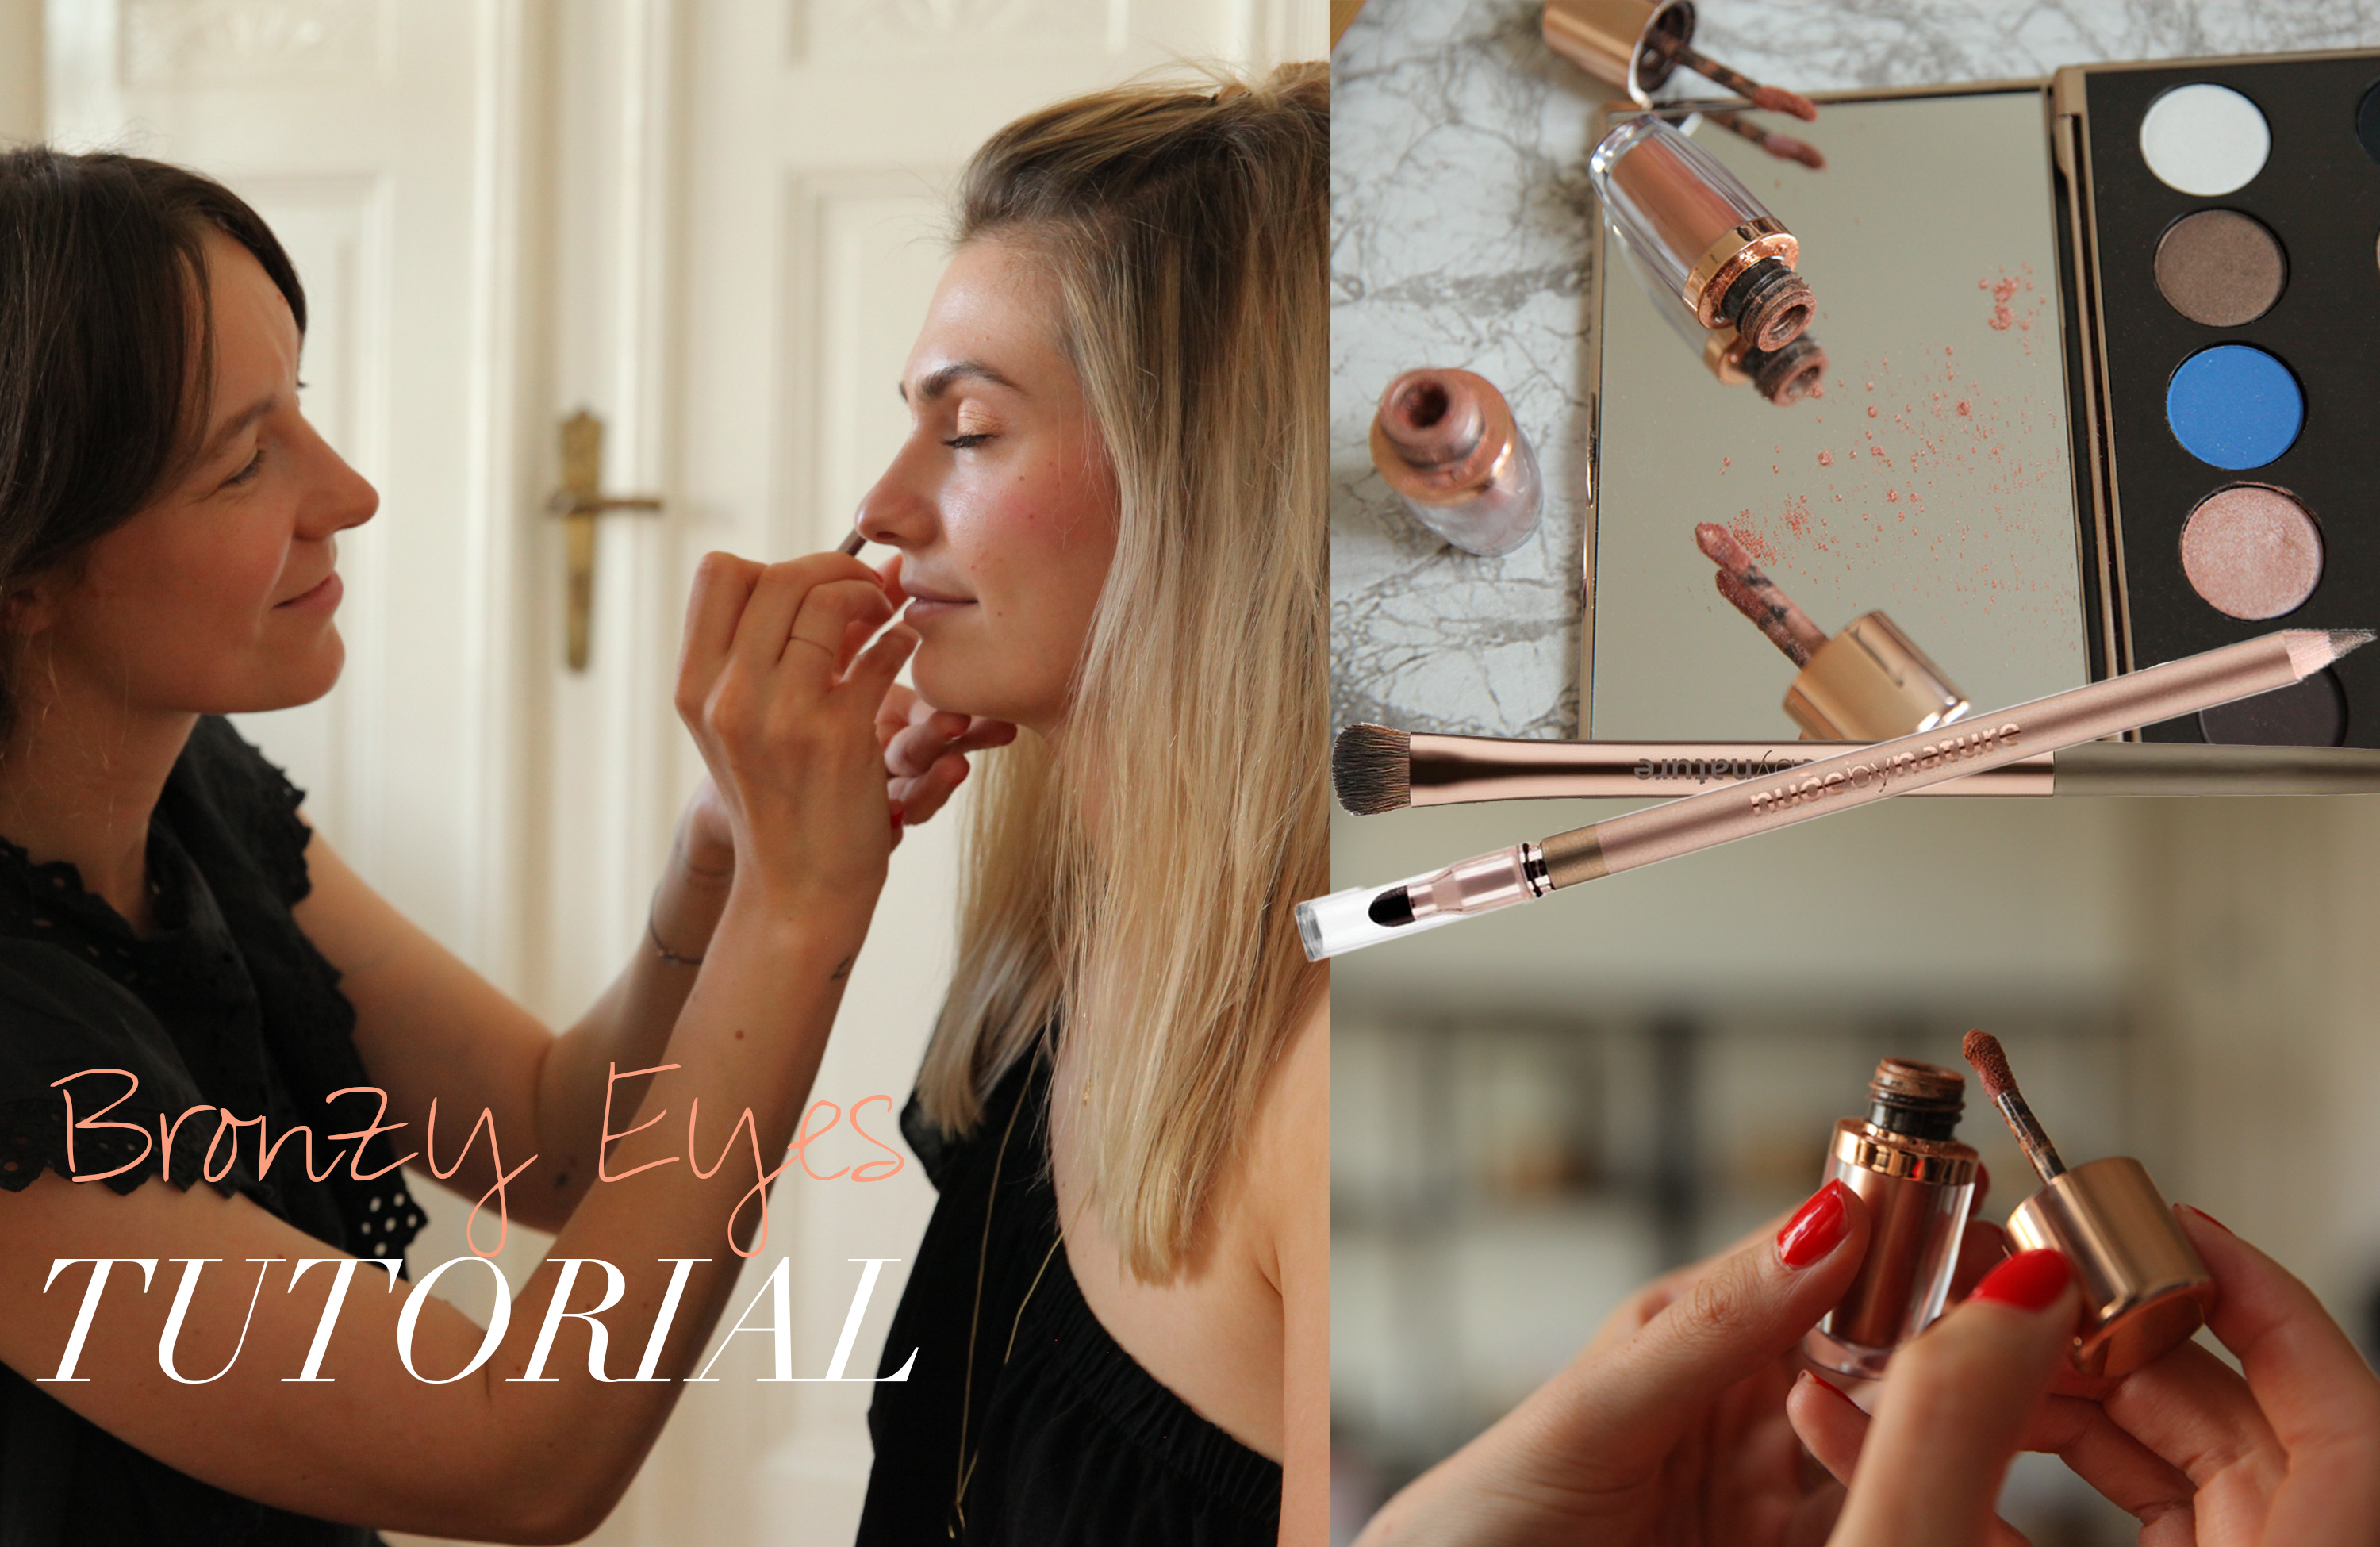 tutorial-bronzy-eyes-nude-by-nature-eye-collection-ari